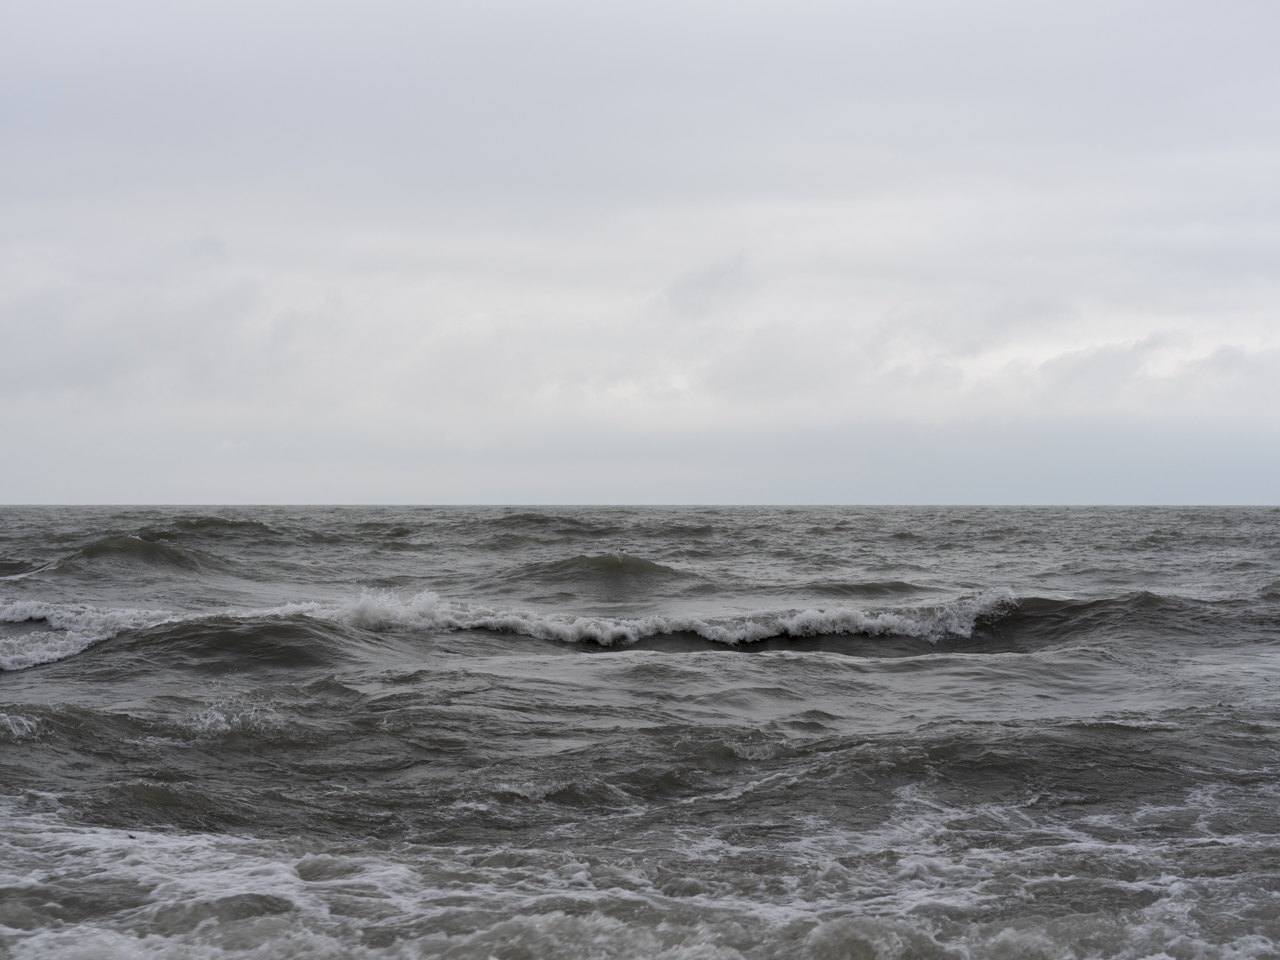 big rippling waves on lake michigan with whitecaps and heavy clouds in the sky